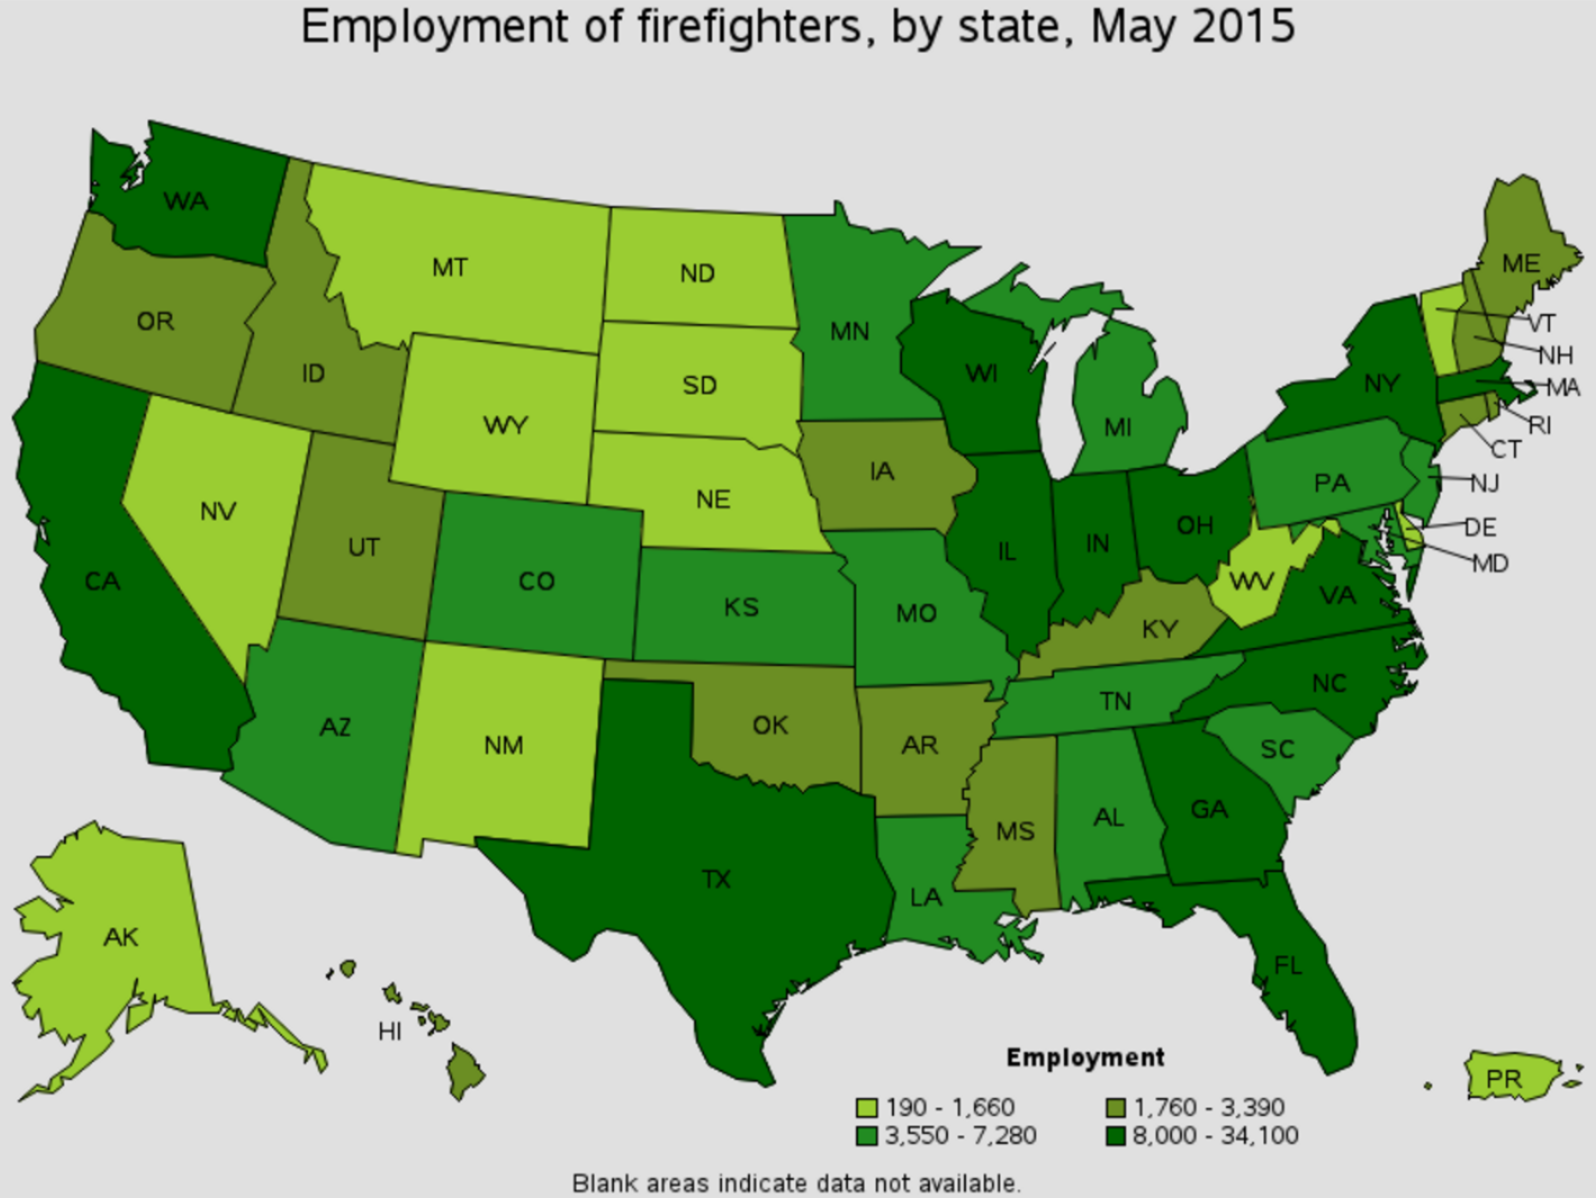 firefighter job outlook by state Tulsa Oklahoma